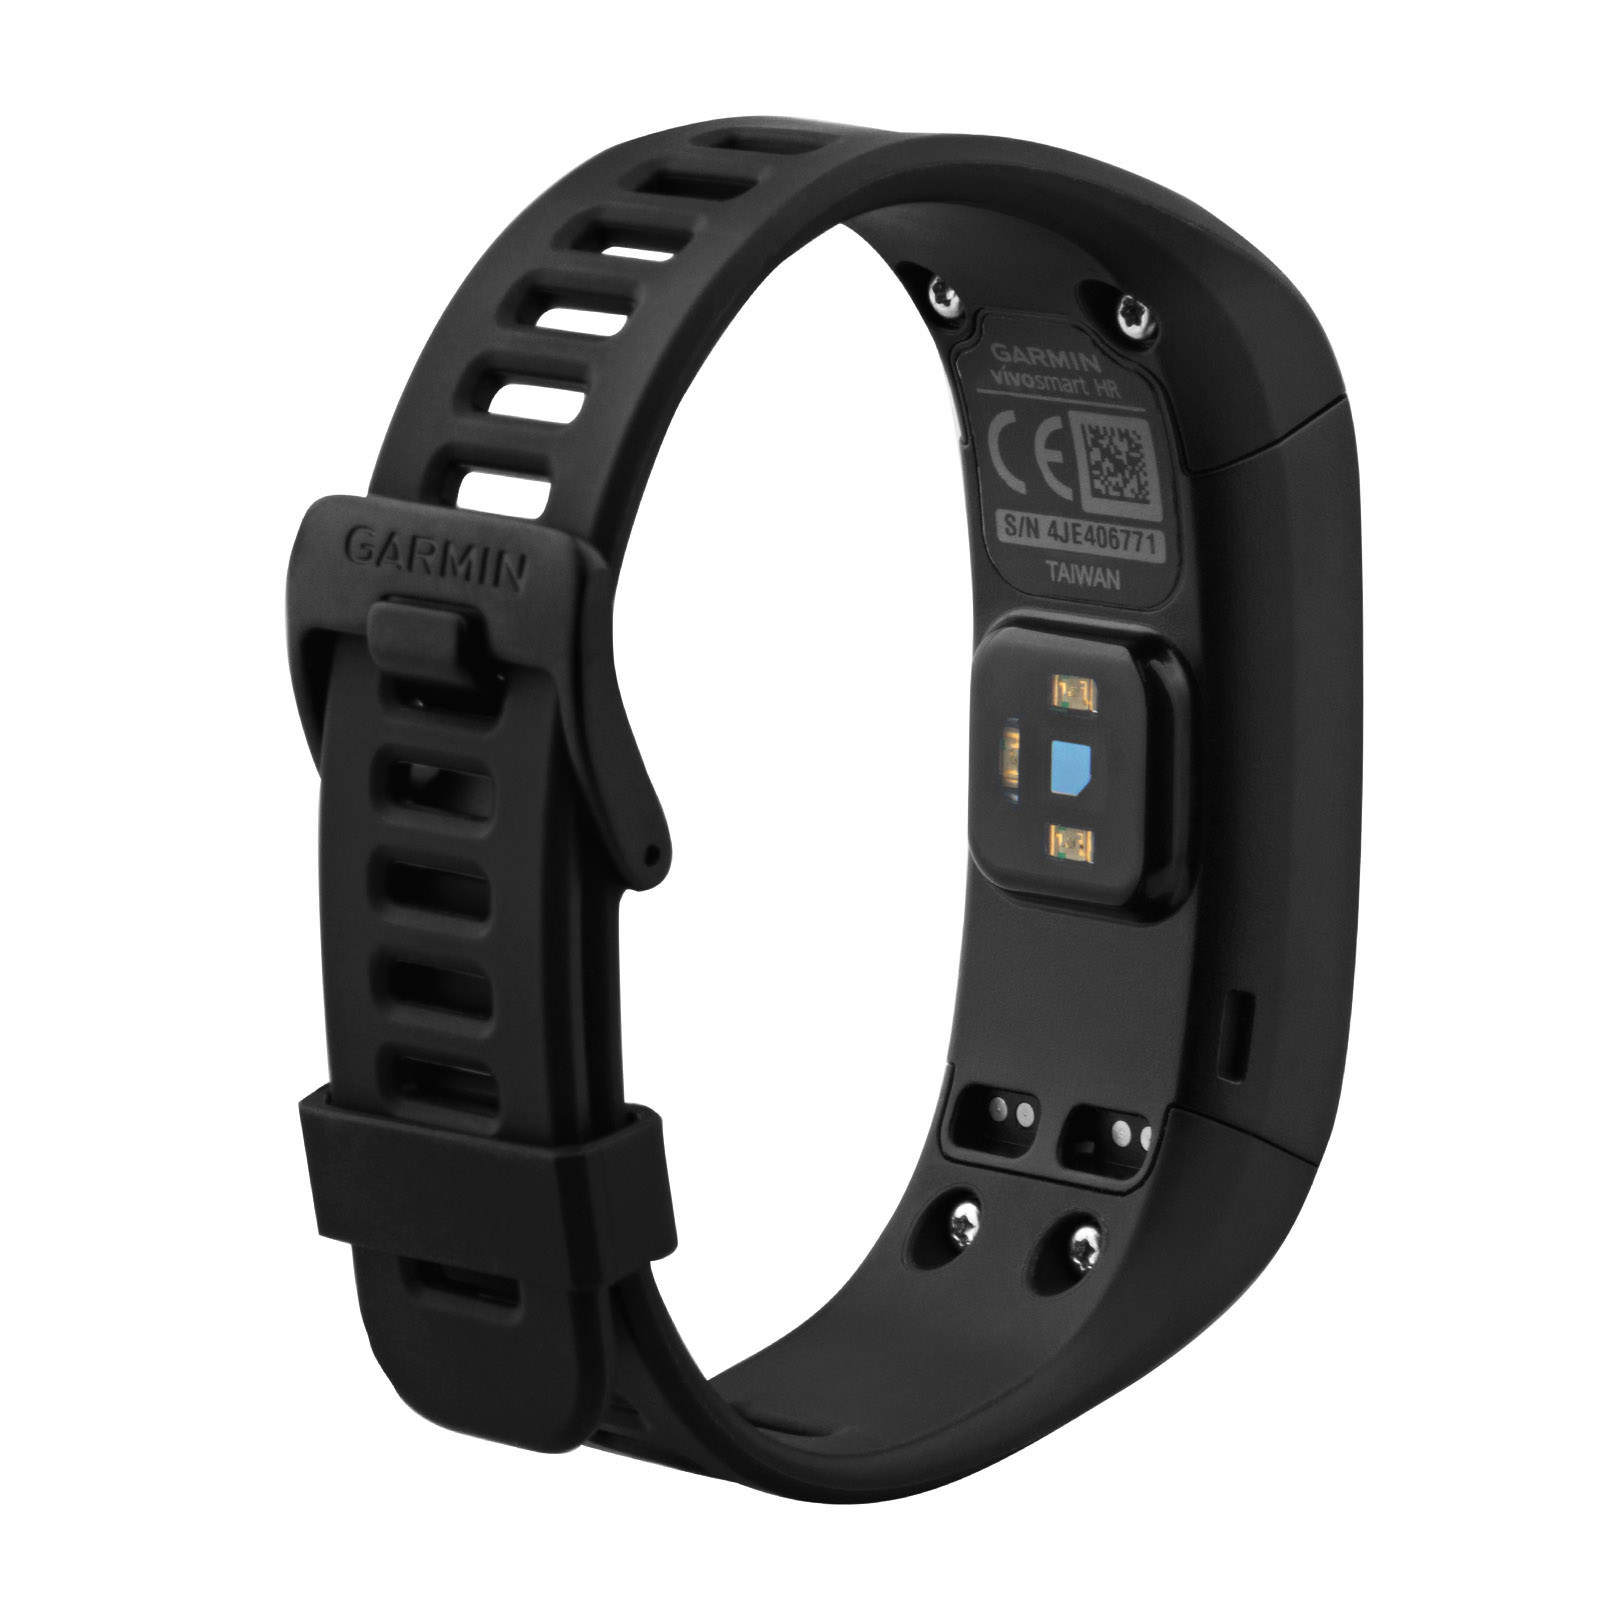 Garmin Vivosmart Hr Bluetooth Fitness Band For Ios And